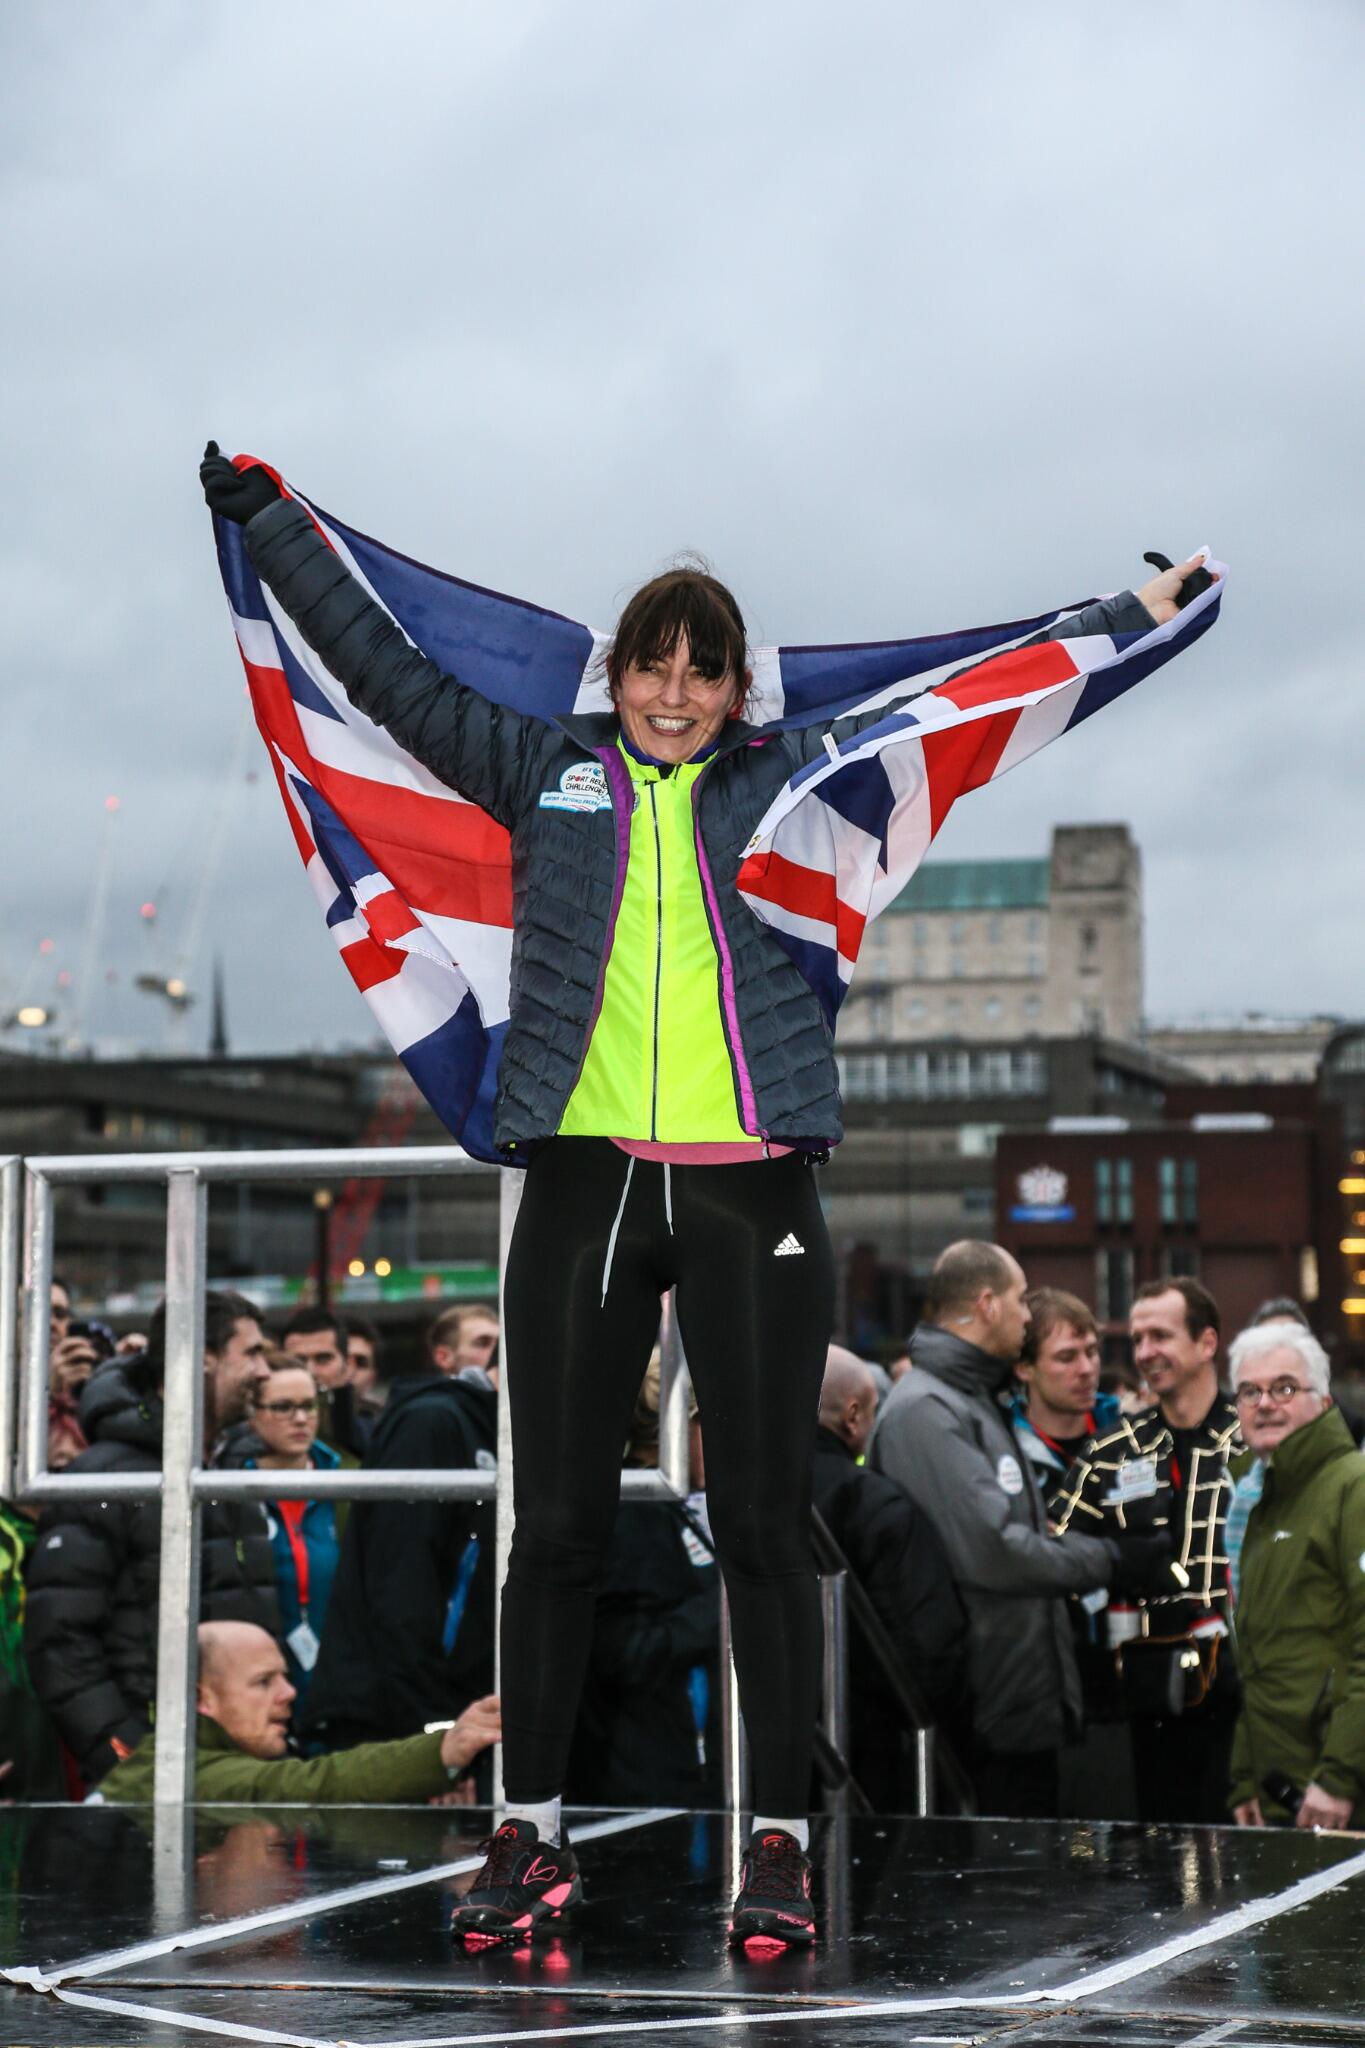 RT @sportrelief: So proud of @ThisisDavina for raising a massive £2,239,931 through her @BTUK challenge #Davina- Beyond Breaking Point http…